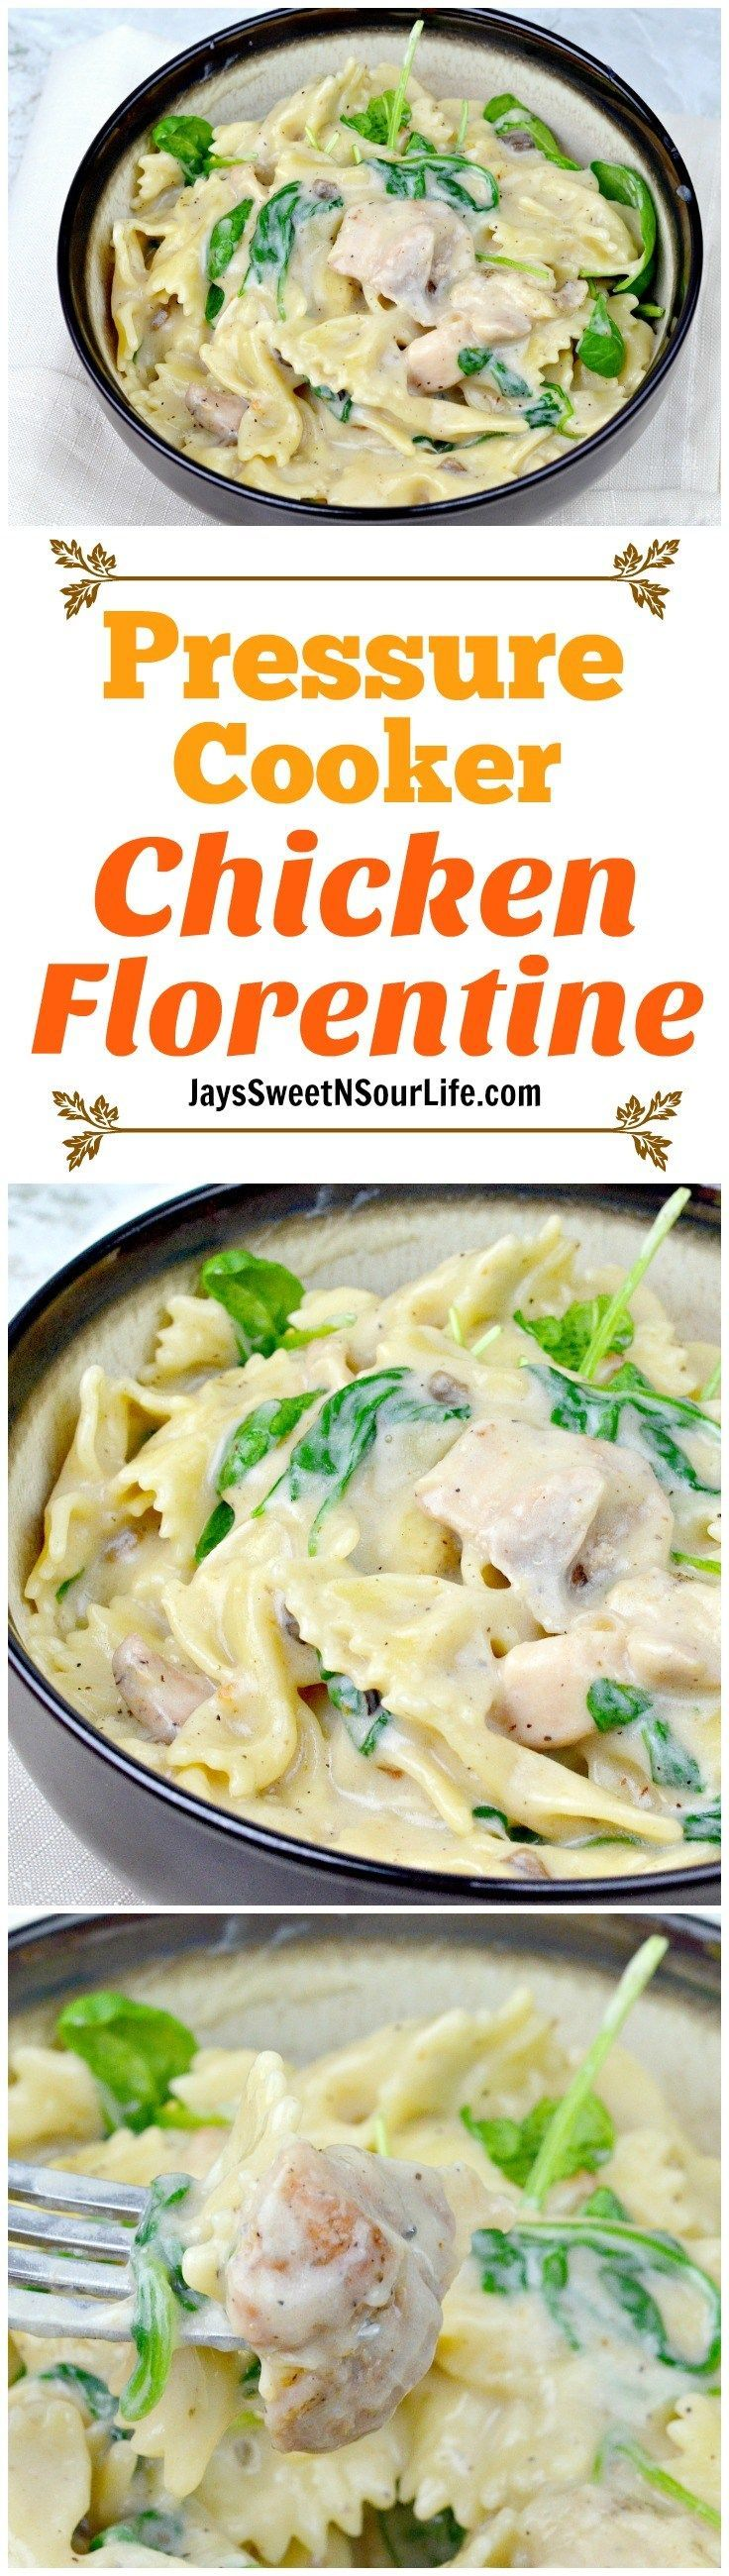 Try this one pot Pressure Cooker Chicken Florentine for your next family meal. Enjoy it fresh with a slice of garlic bread.